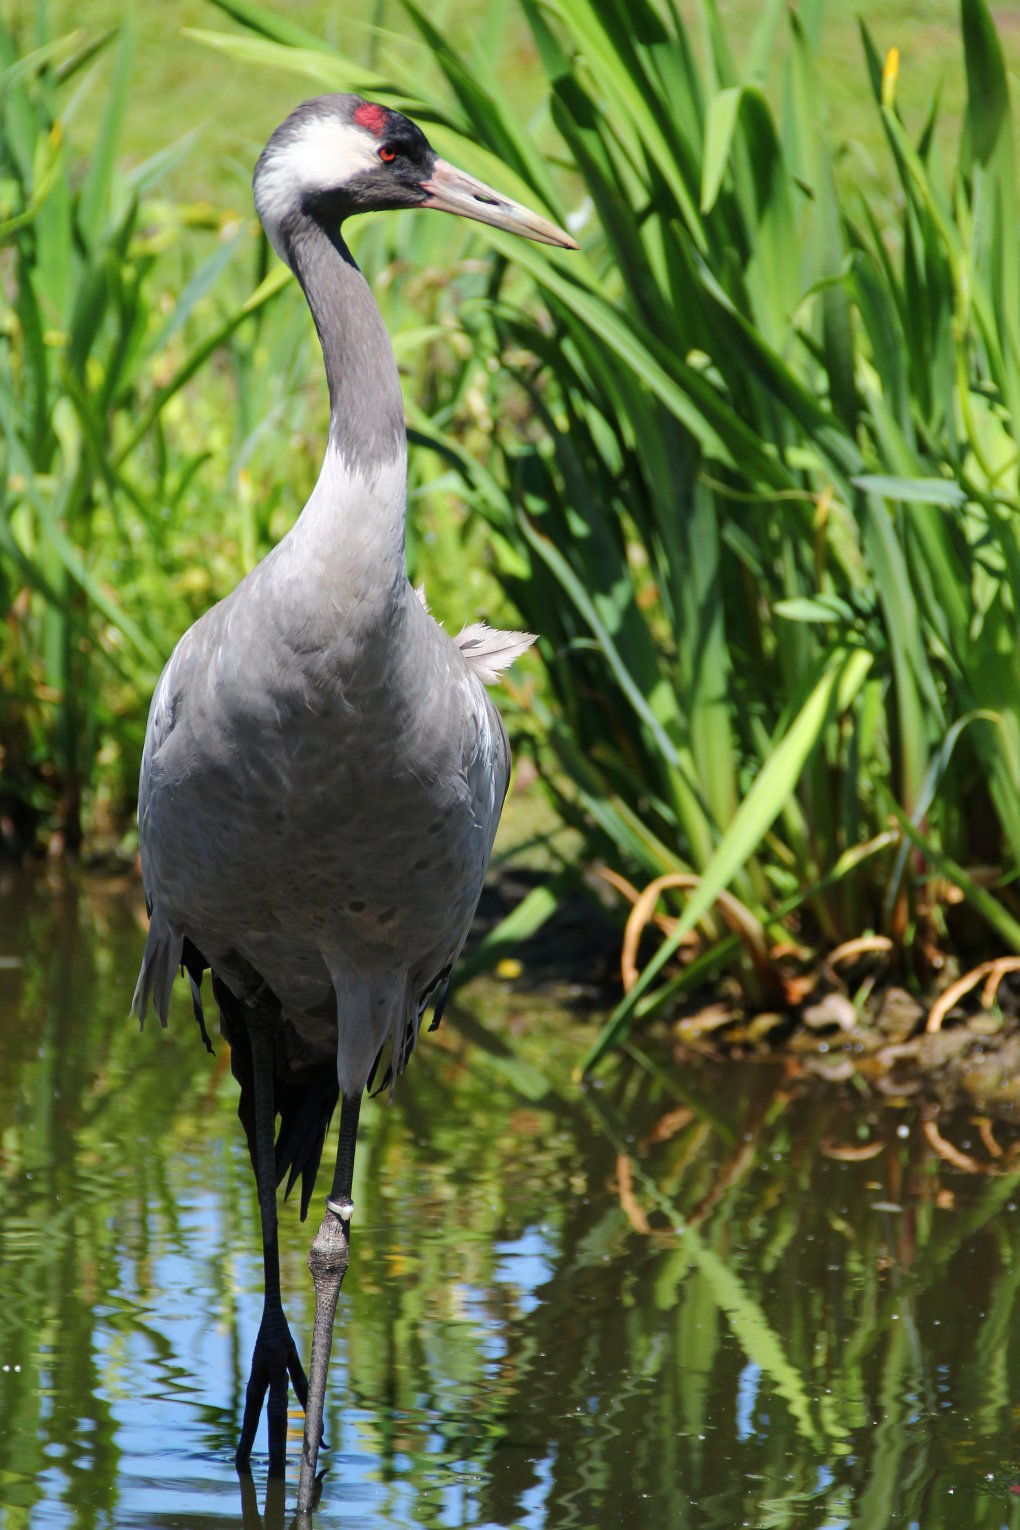 crane2 - photographs by me..